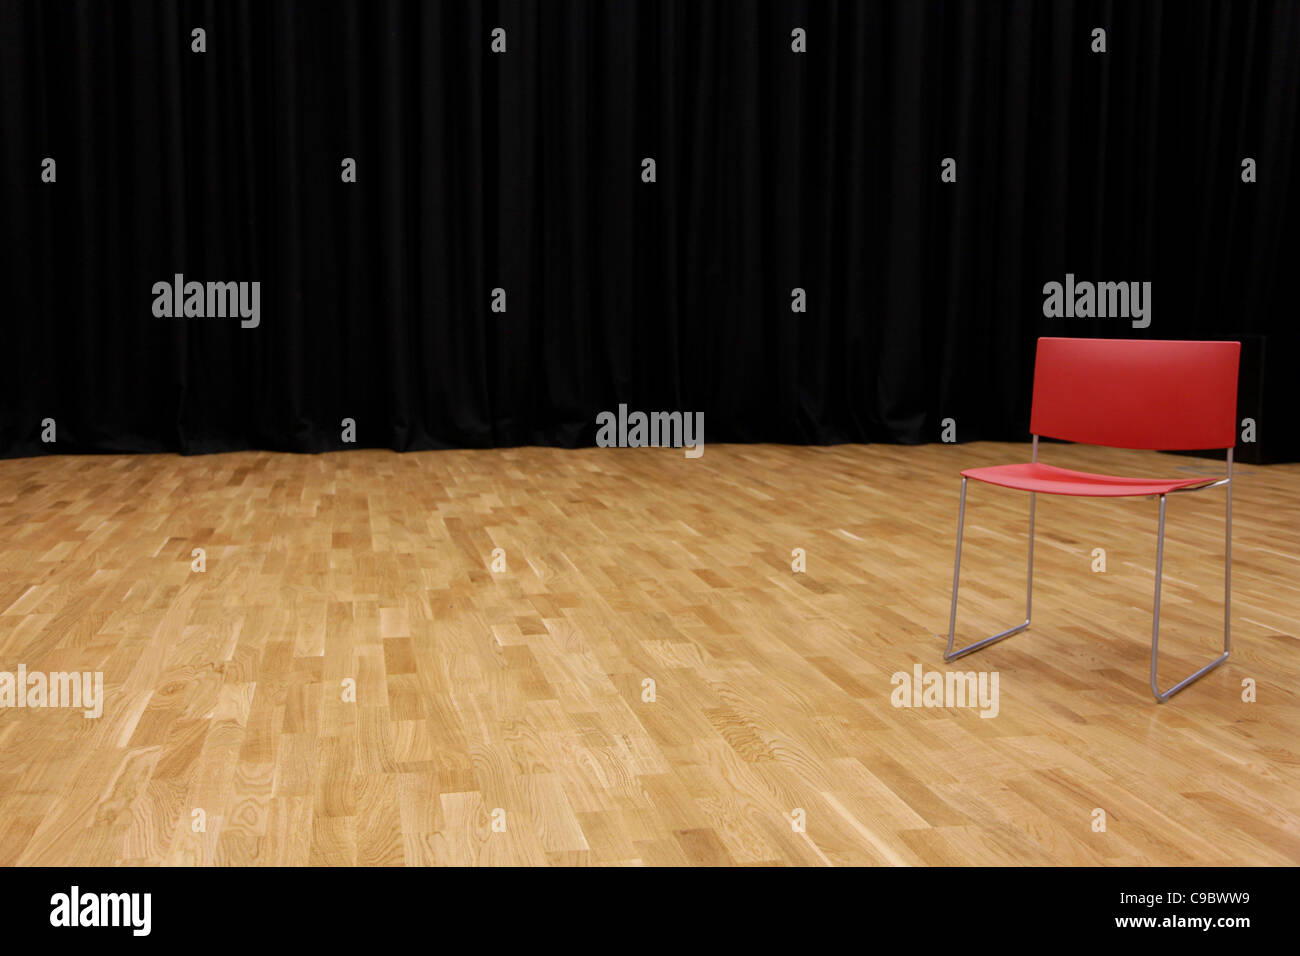 A directors chair on a stage with a black curtain in background - Stock Image